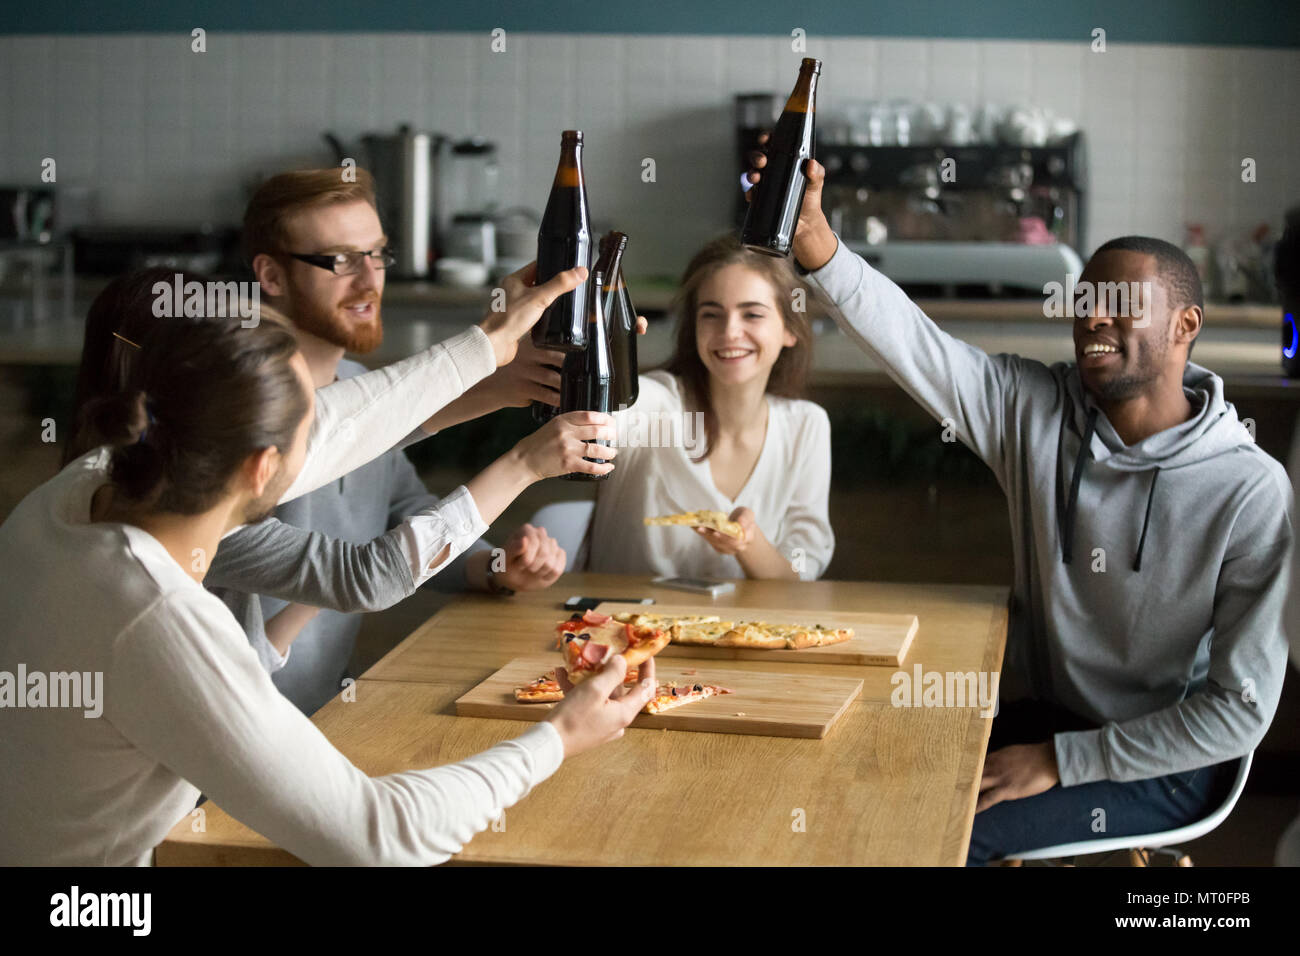 Diverse millennial people hanging out together drinking beer eat - Stock Image